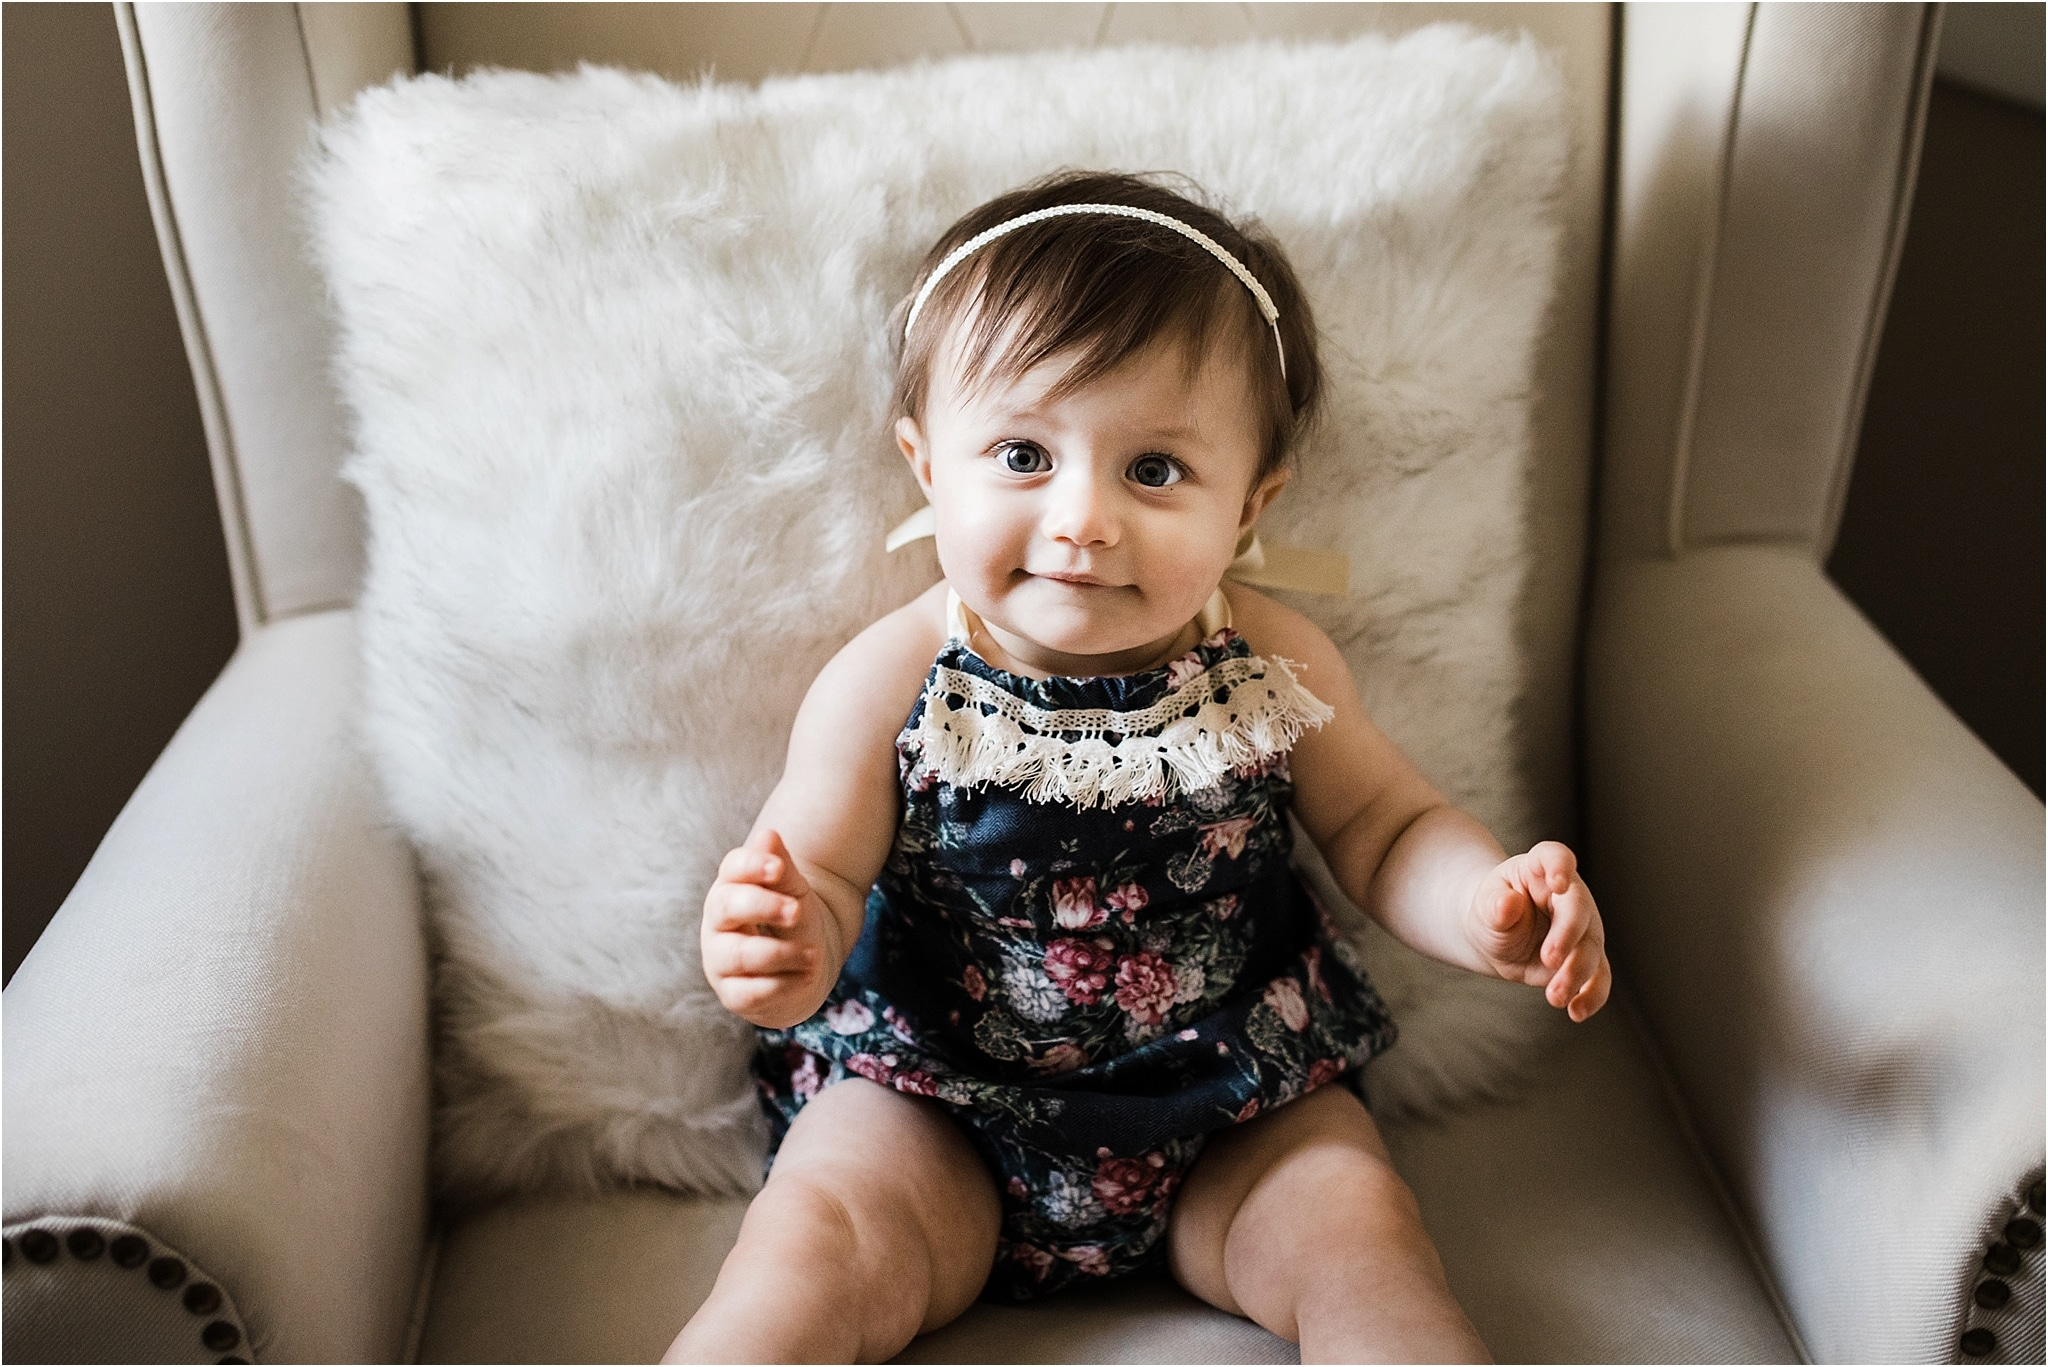 ONE YEAR OLD GIRL IN FLORAL ROMPER PHOTOS IN NURSERY